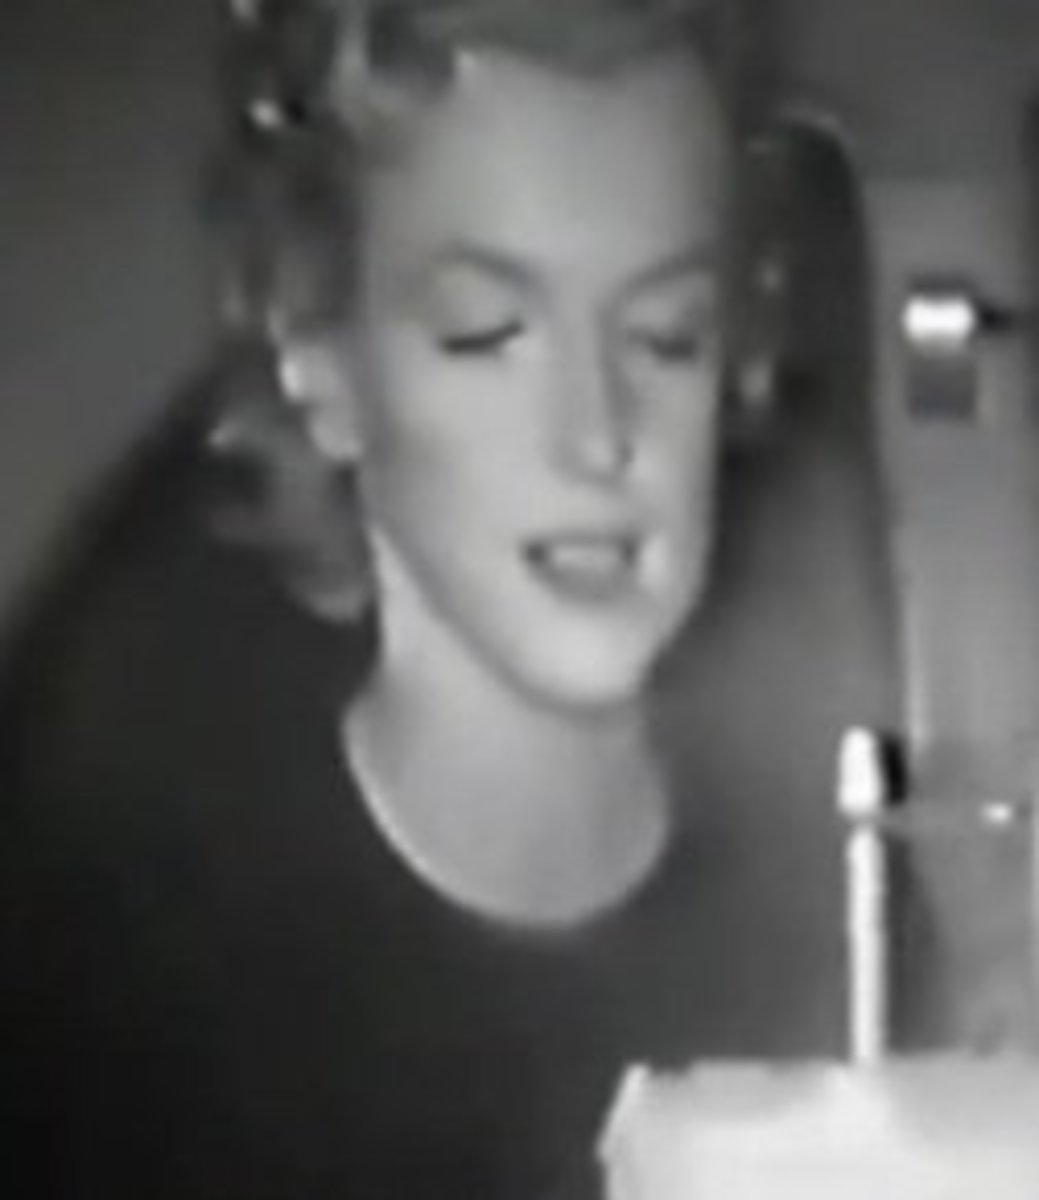 A rare image of Marilyn Monroe on her 30th birthday.